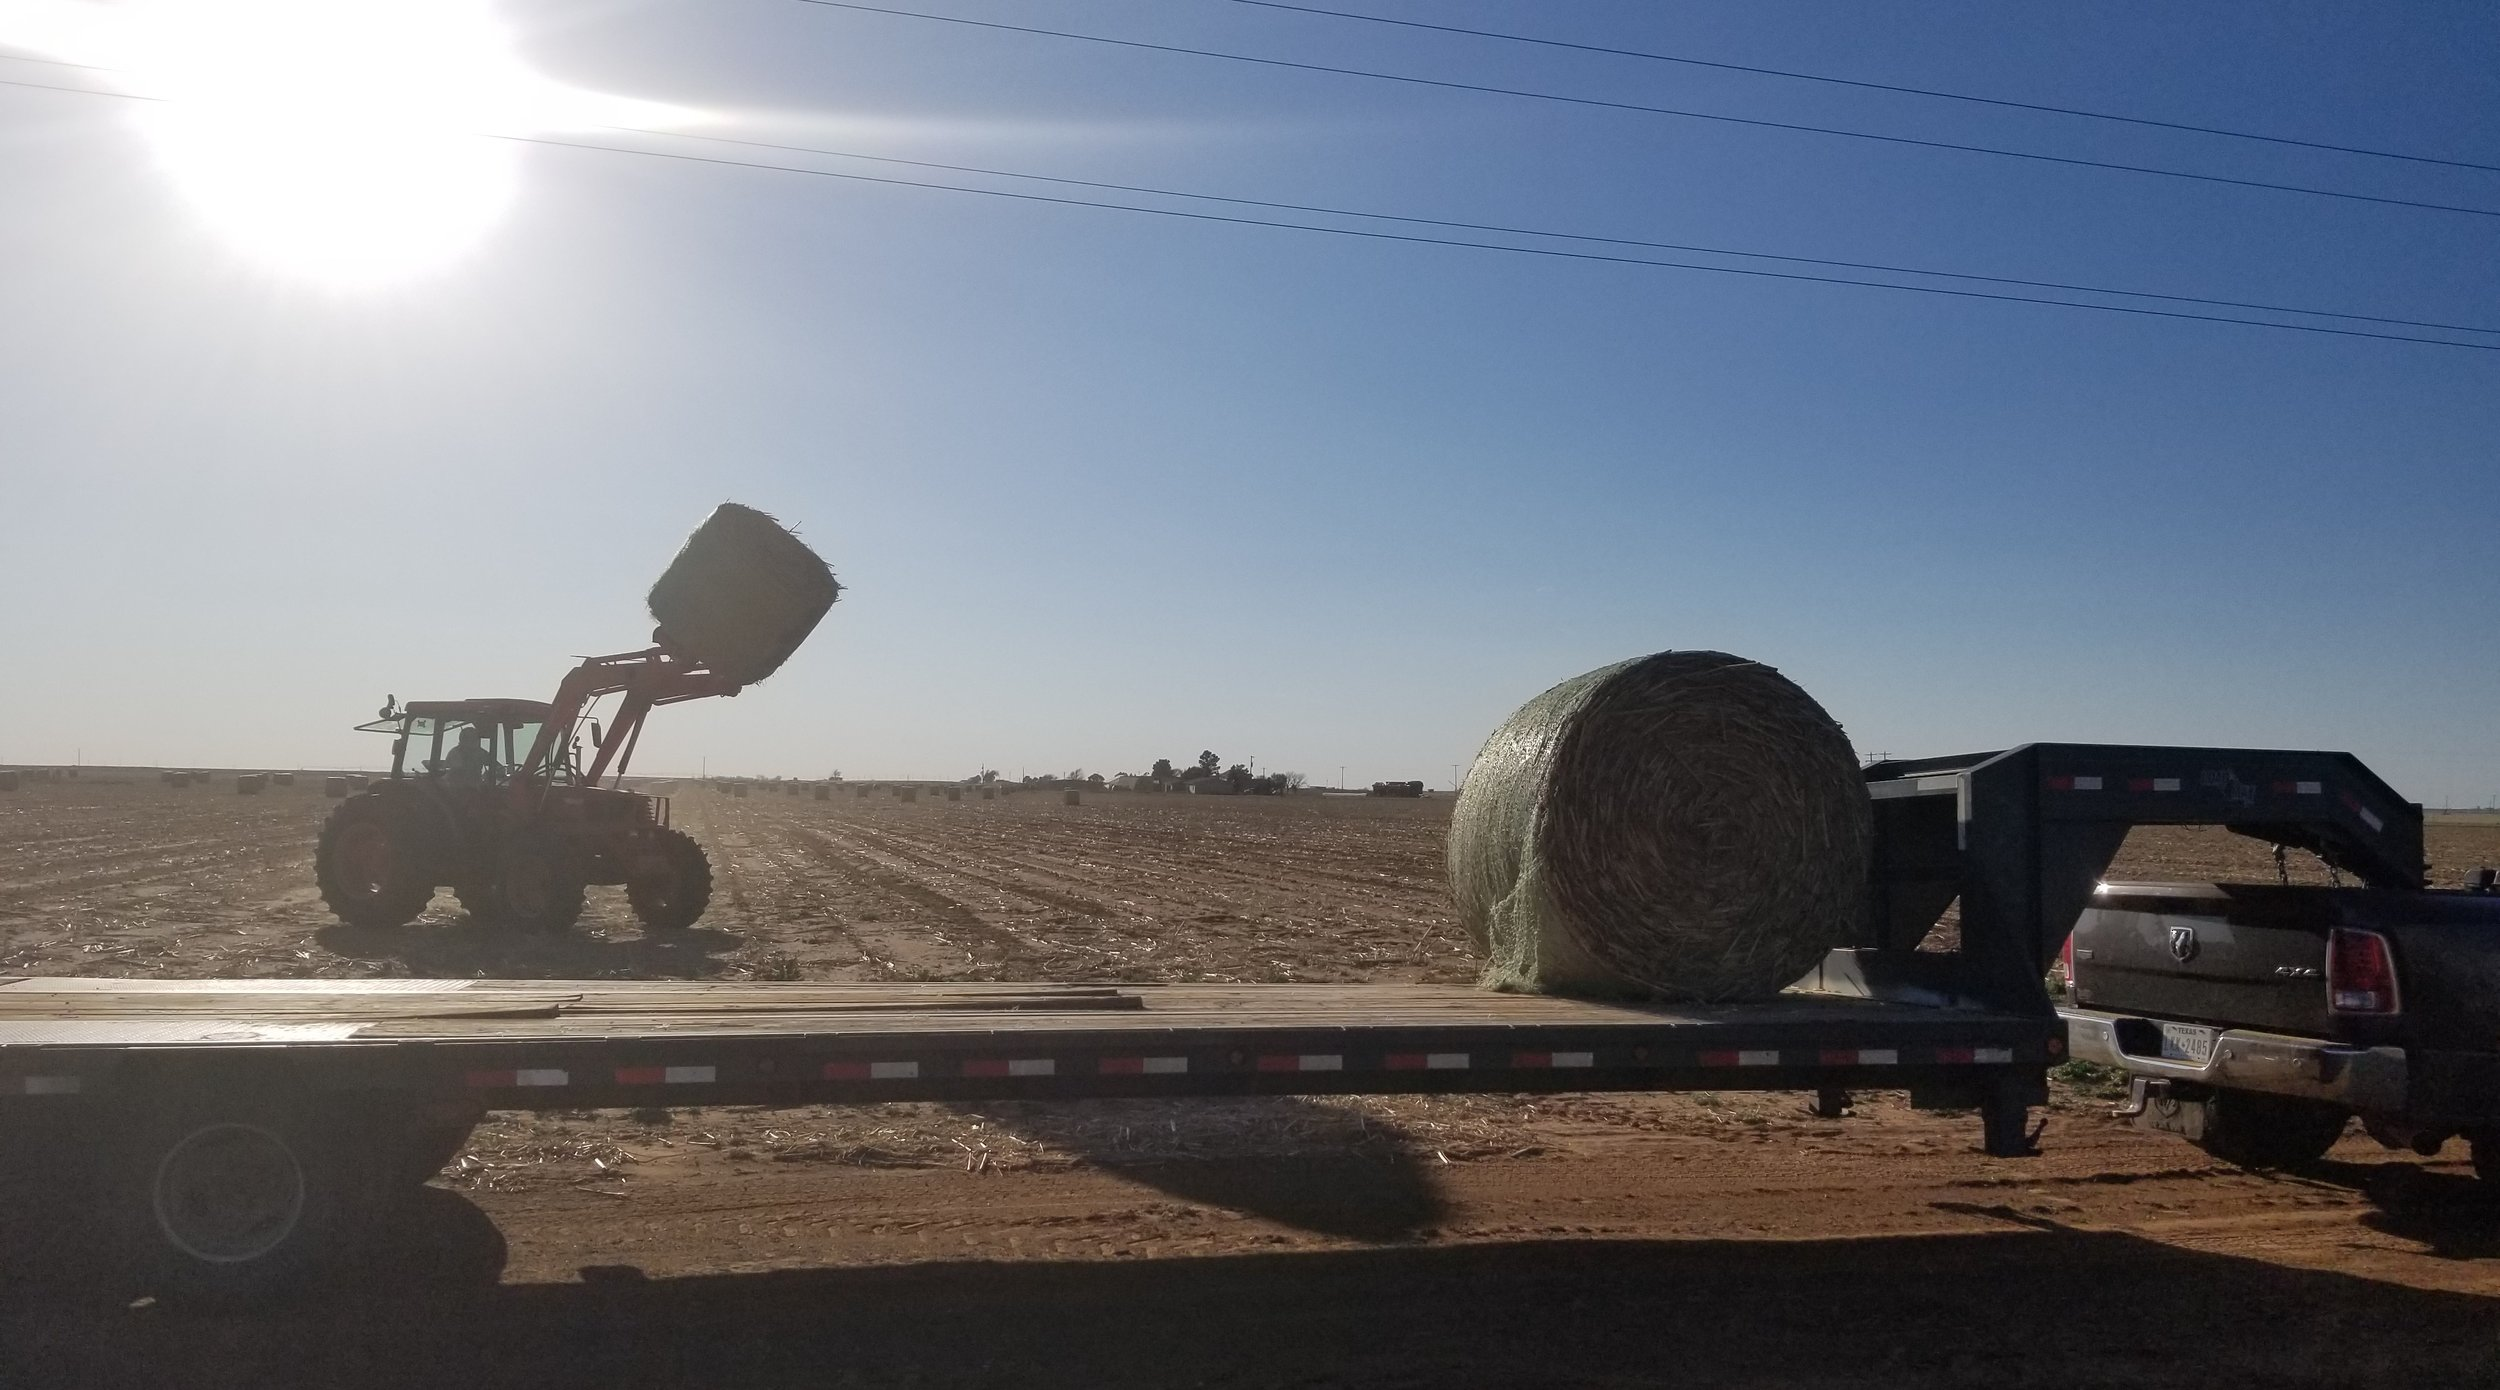 Loading up bales for a delivery to New Mexico that night!